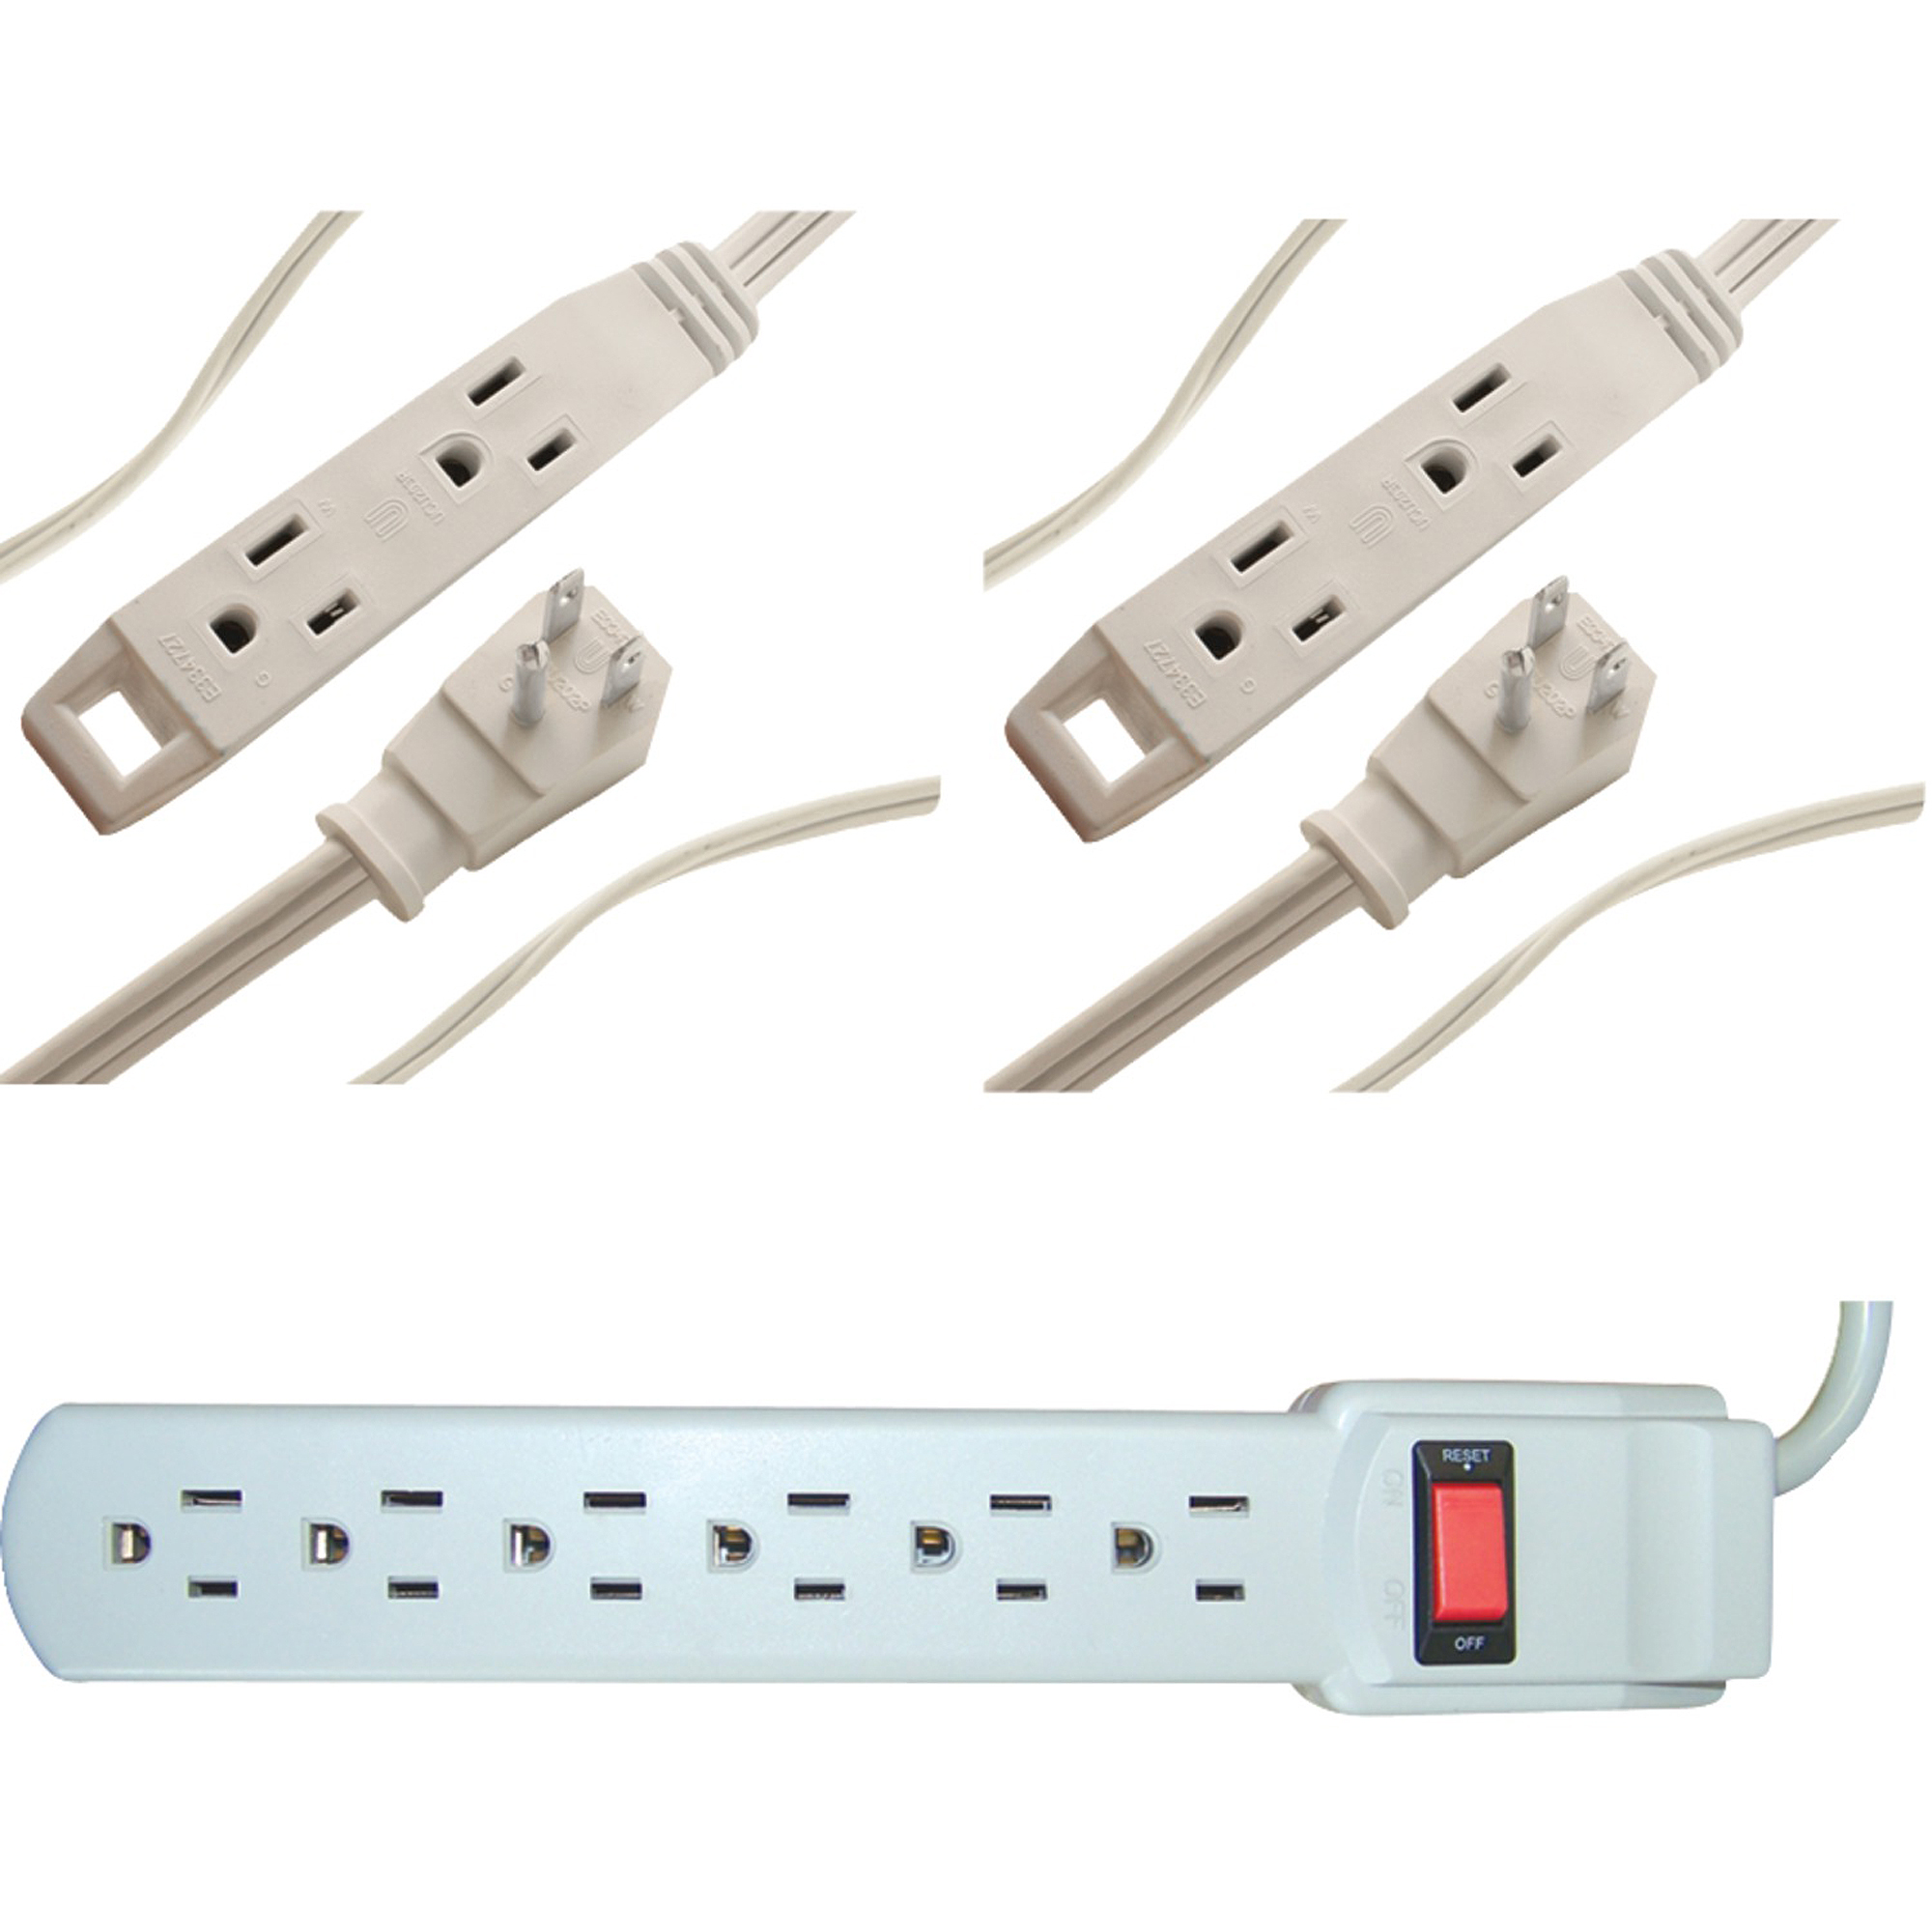 Axis Surge Protector and Extension Cord Bundle, White